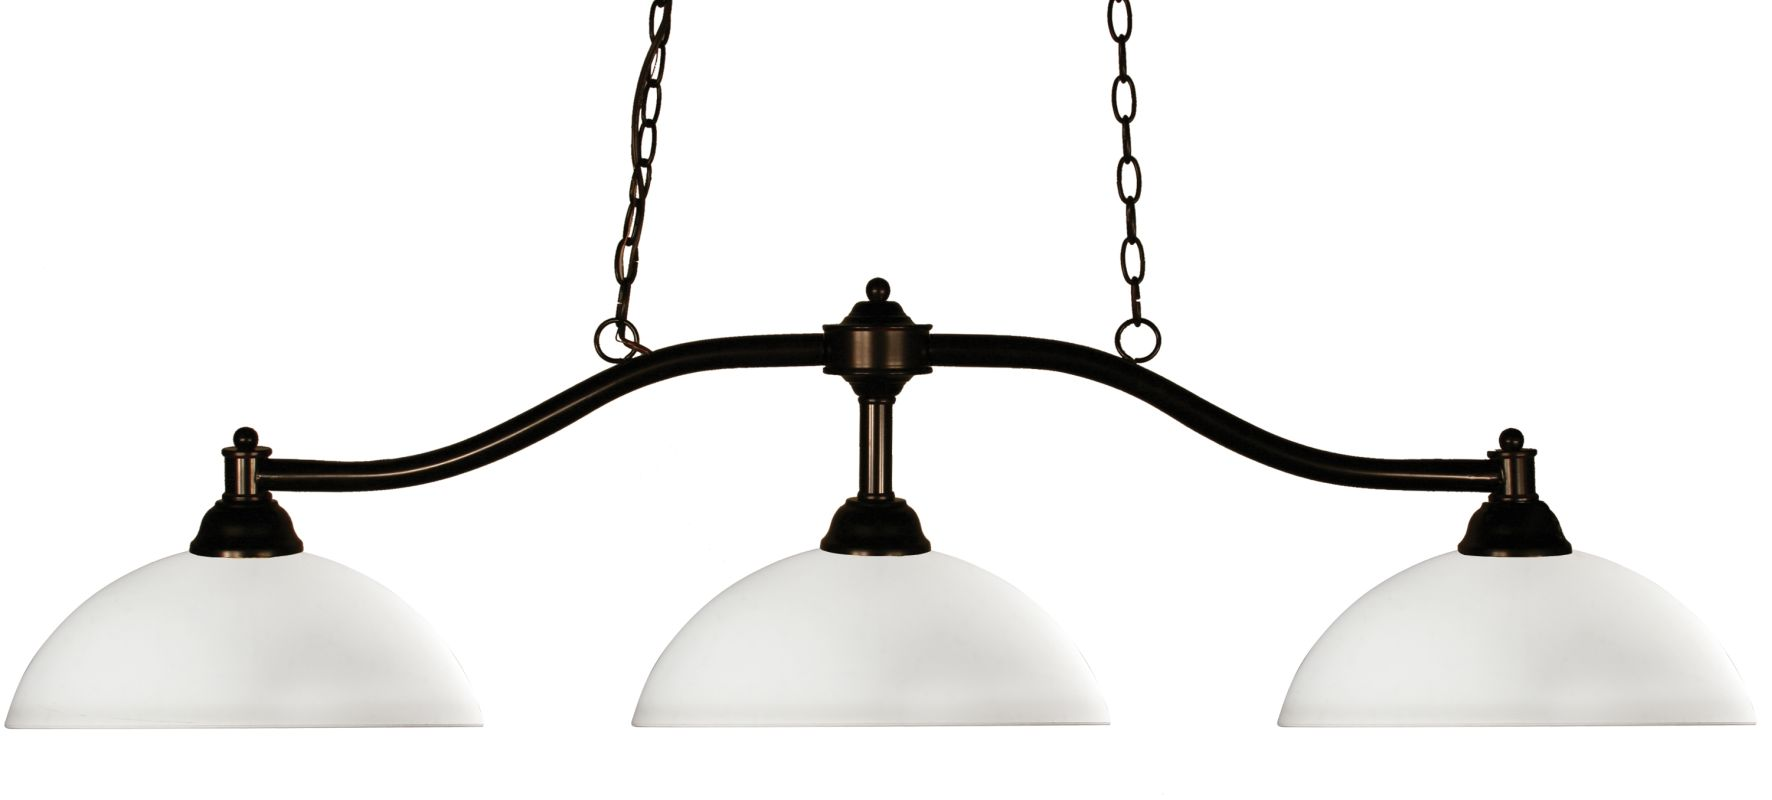 Z-Lite 147-DMO14 Chance 3 Light Chandelier with Matte Opal Glass Shade Sale $278.00 ITEM: bci2519194 ID#:147BRZ-DMO14 UPC: 685659019506 :